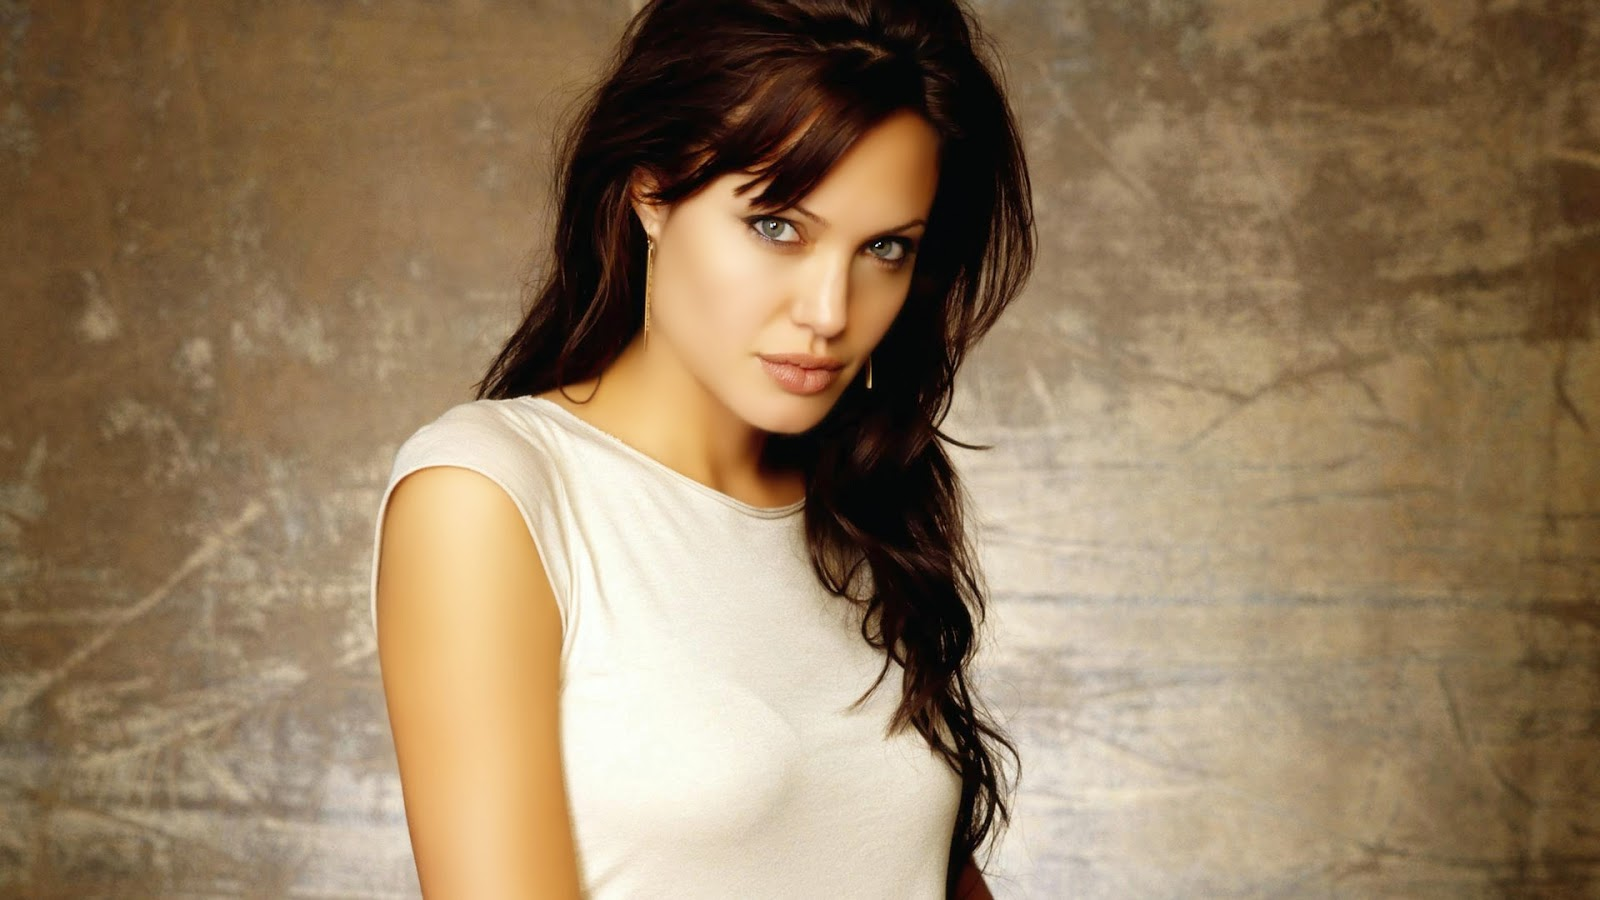 Images of Angelina Jolie Wallpaper